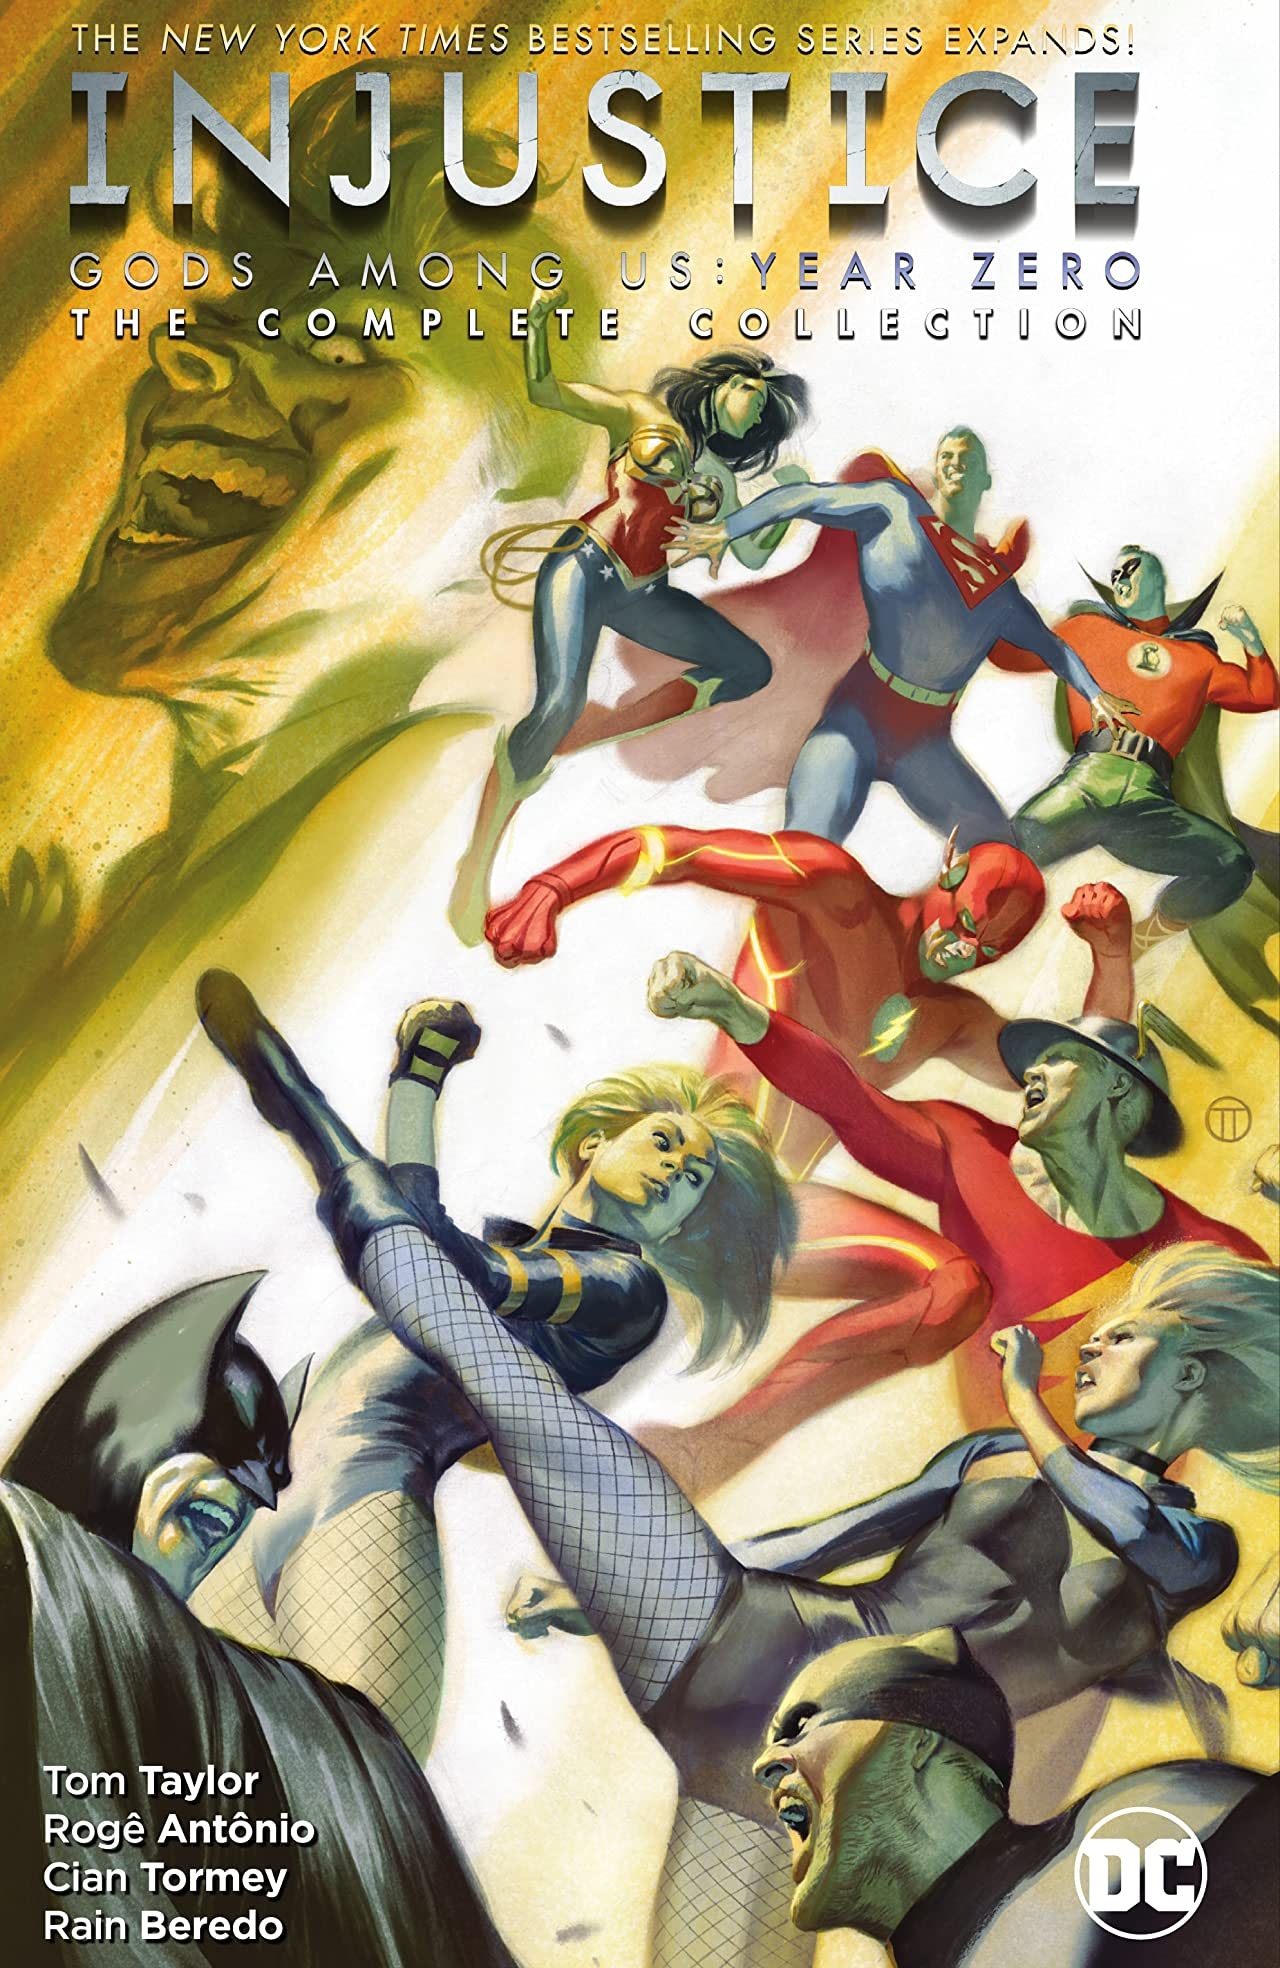 Injustice: Gods Among Us: Year Zero: The Complete Collection